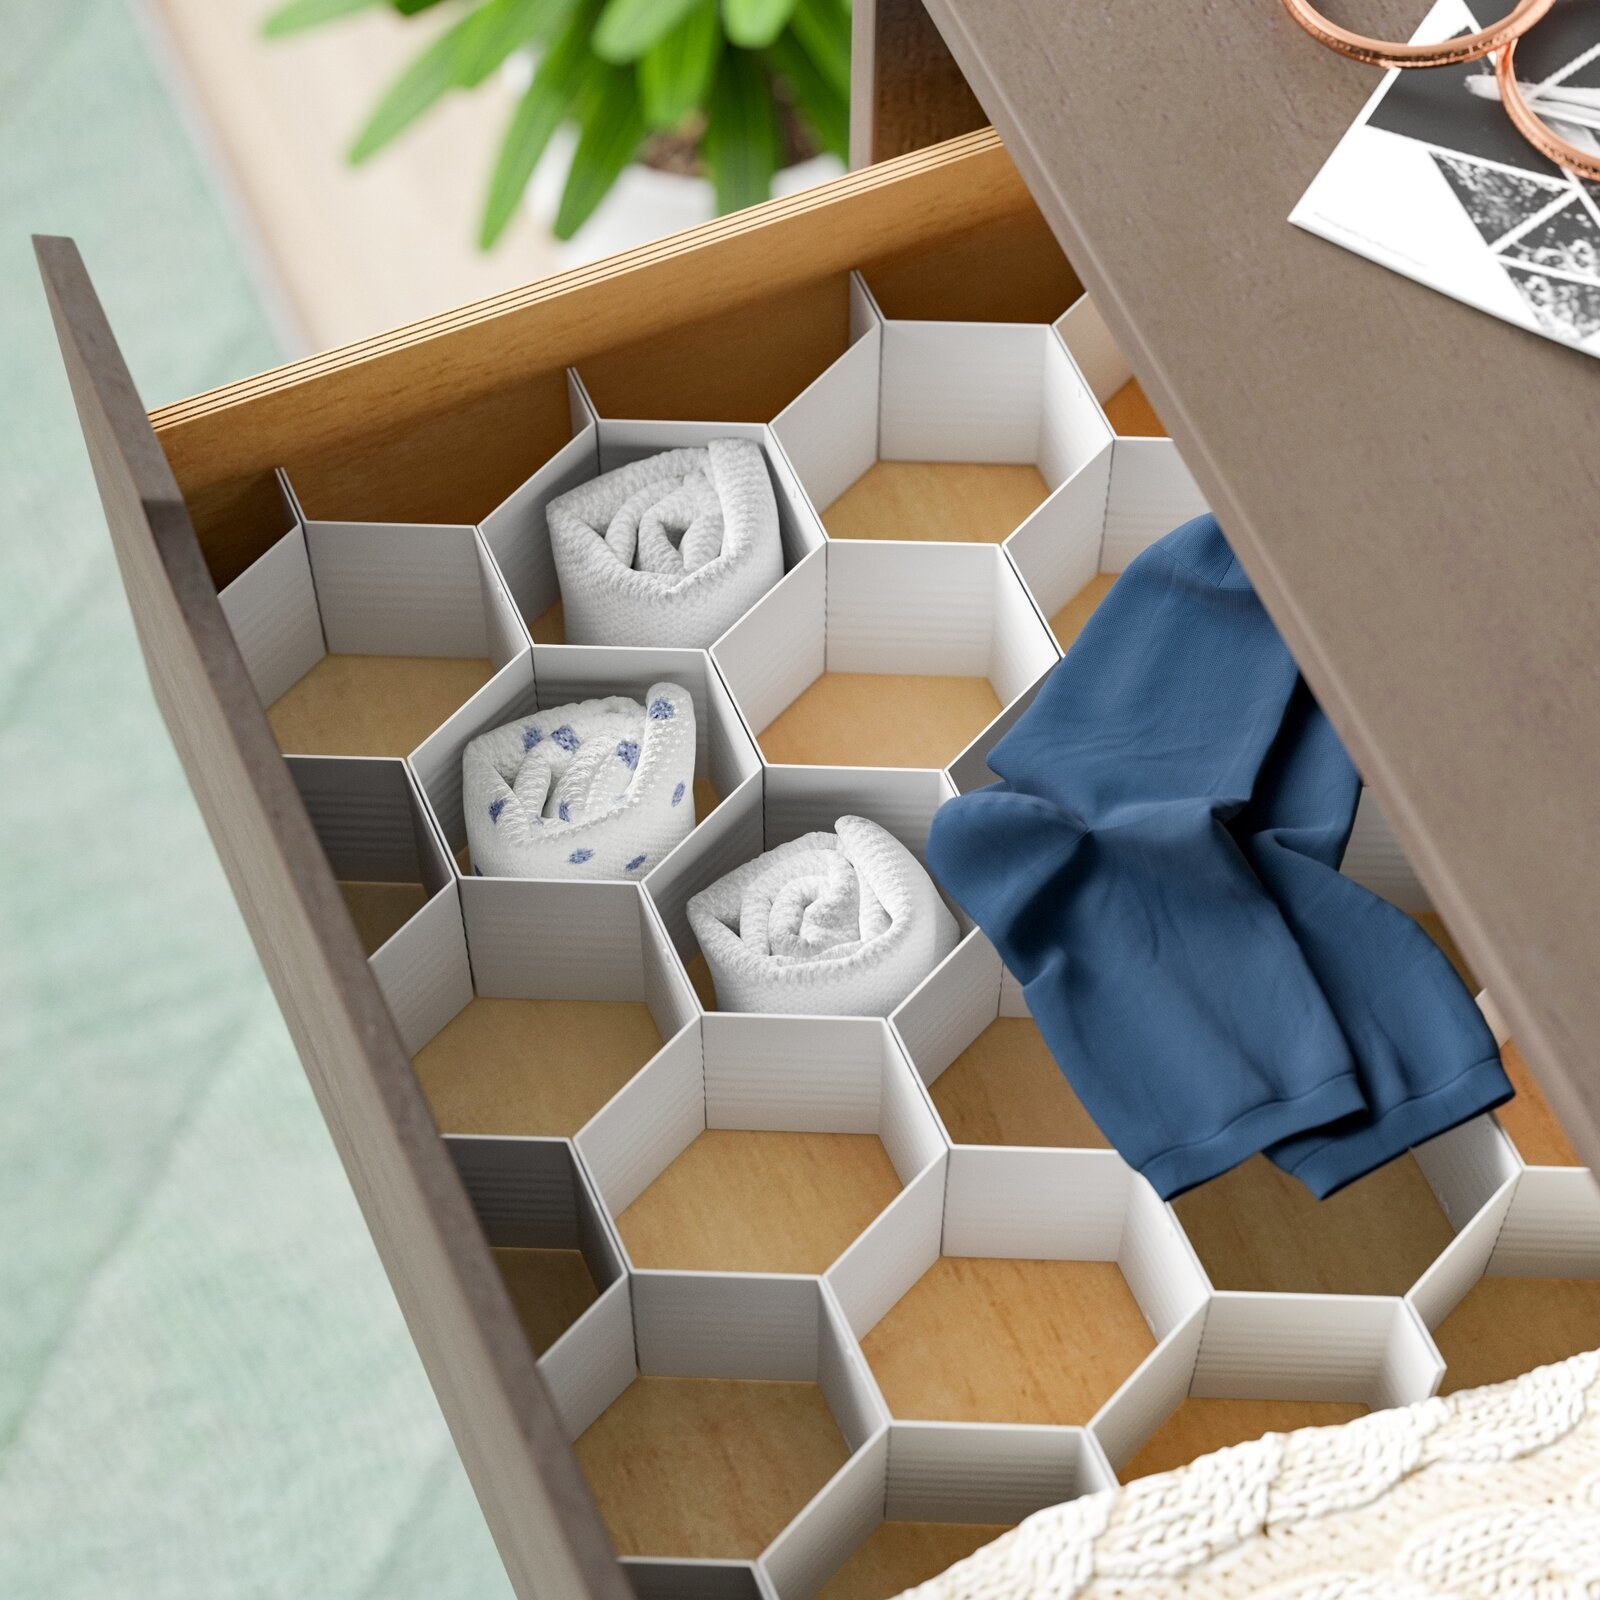 top view of a honeycomb organizer in a drawer